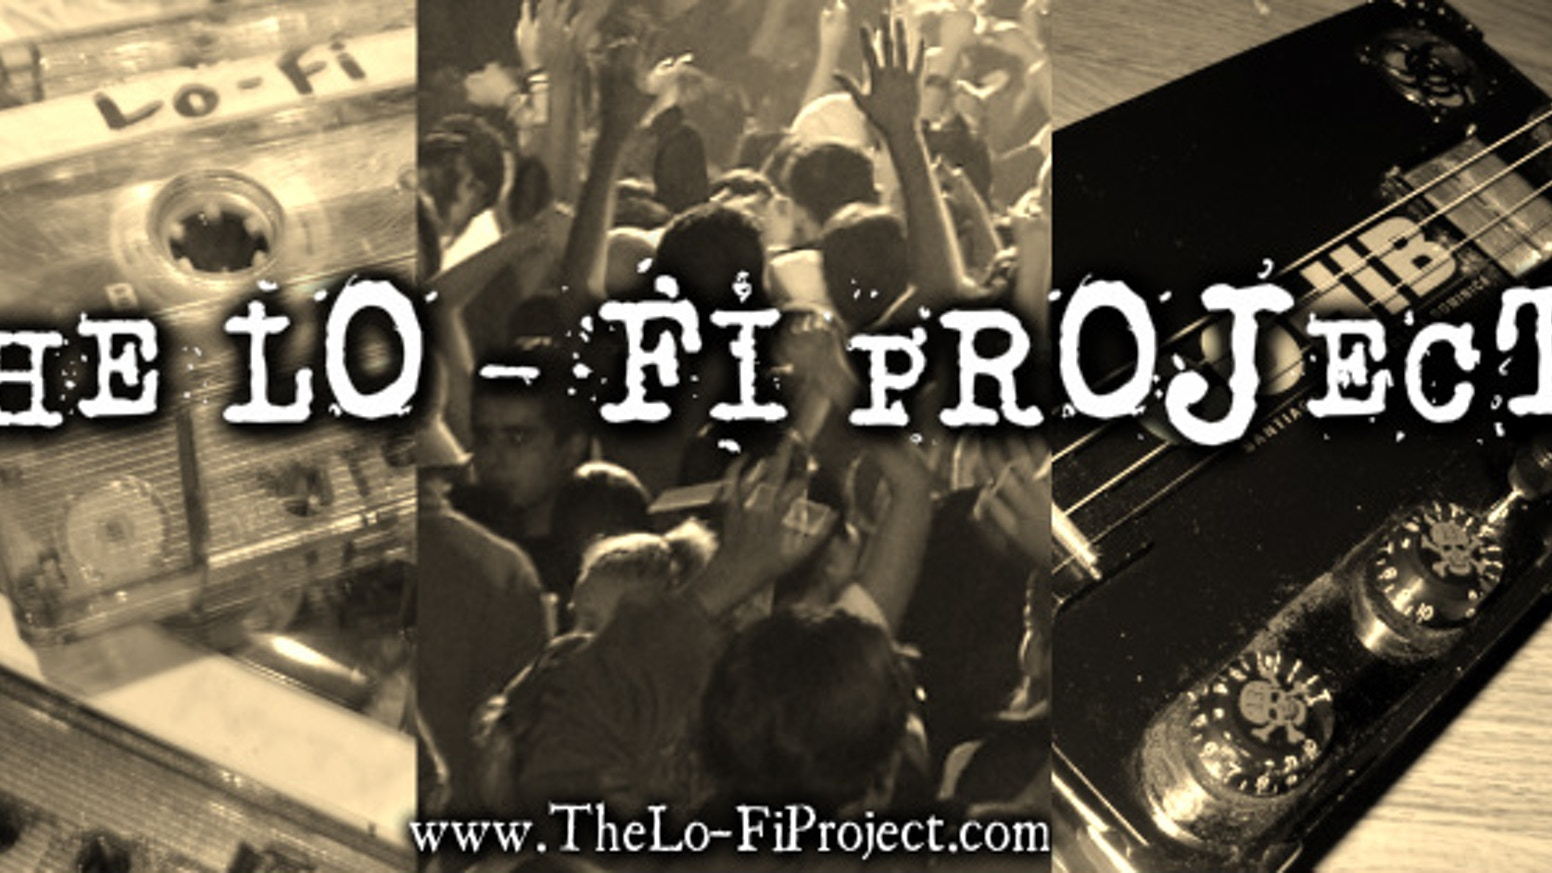 The Lo-Fi Project (a cigar box guitar band) New Album by Brian Saner